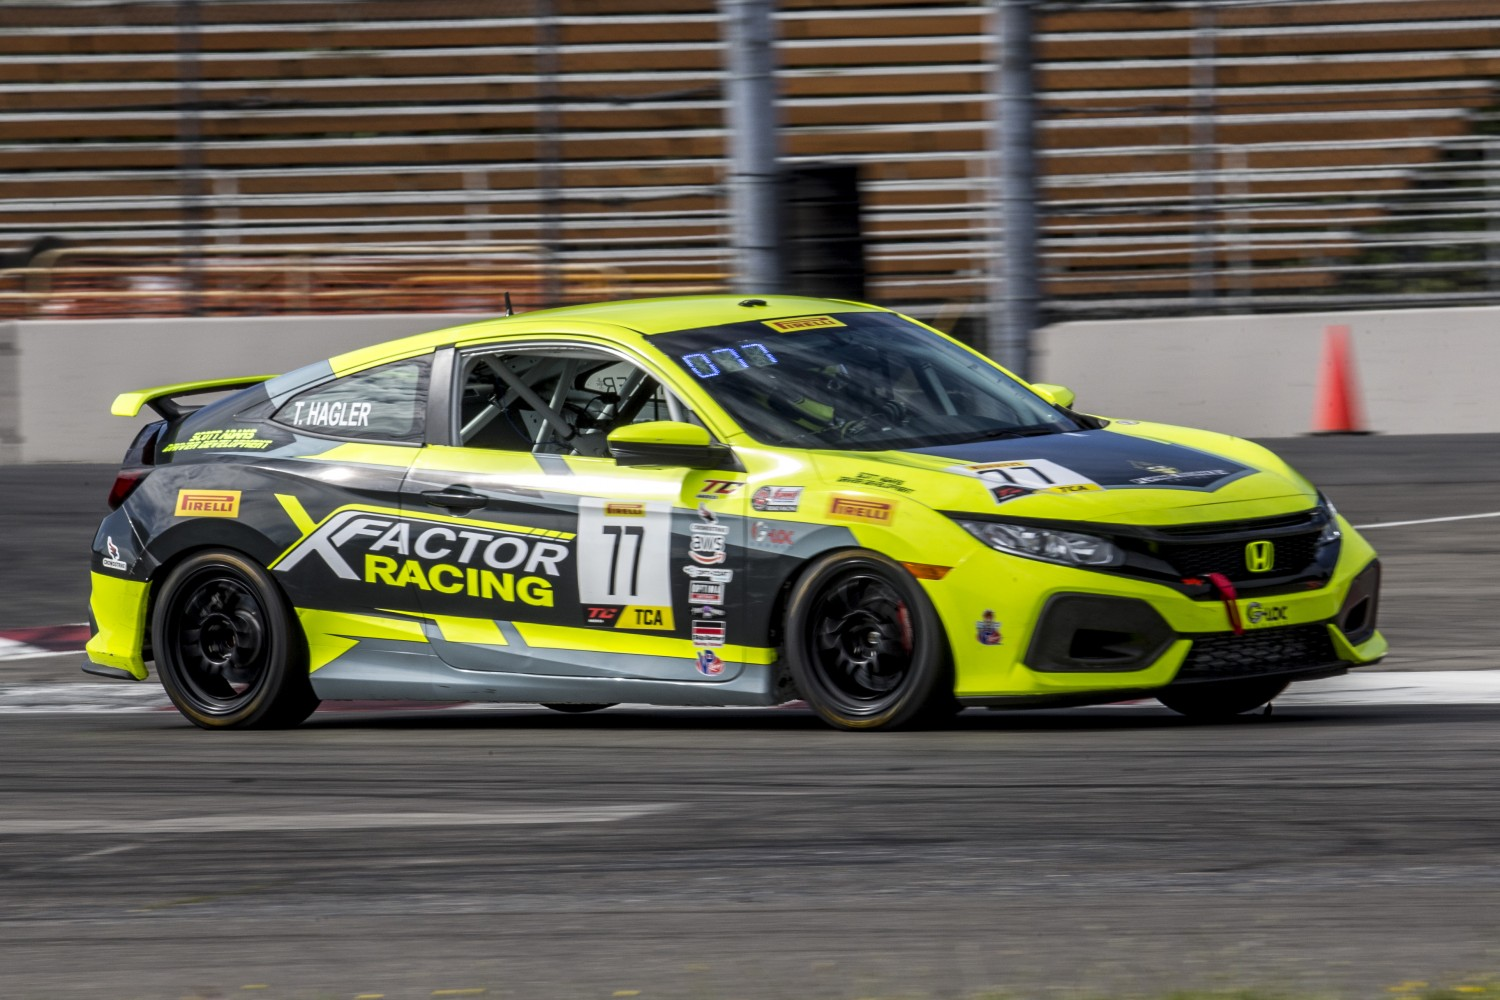 #77 Honda Civic Si of Taylor Hagler, Rose Cup Races, Portland OR  | Brian Cleary/SRO